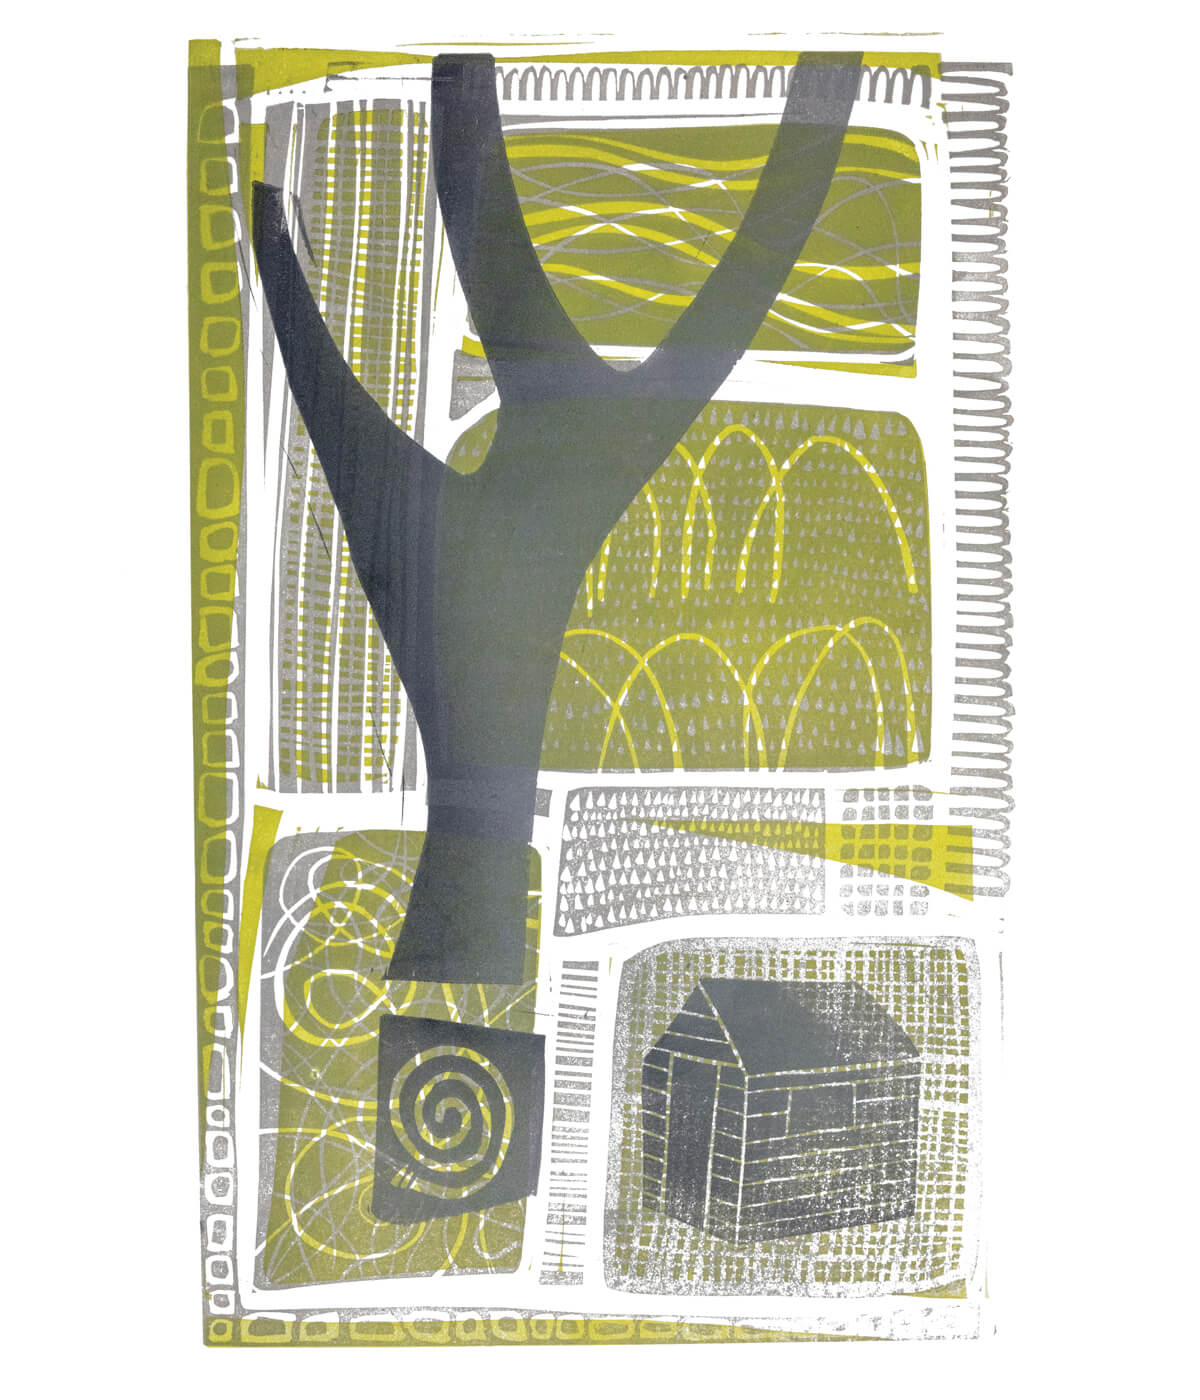 Shortest Day I, a linocut print by Sarah Kirby